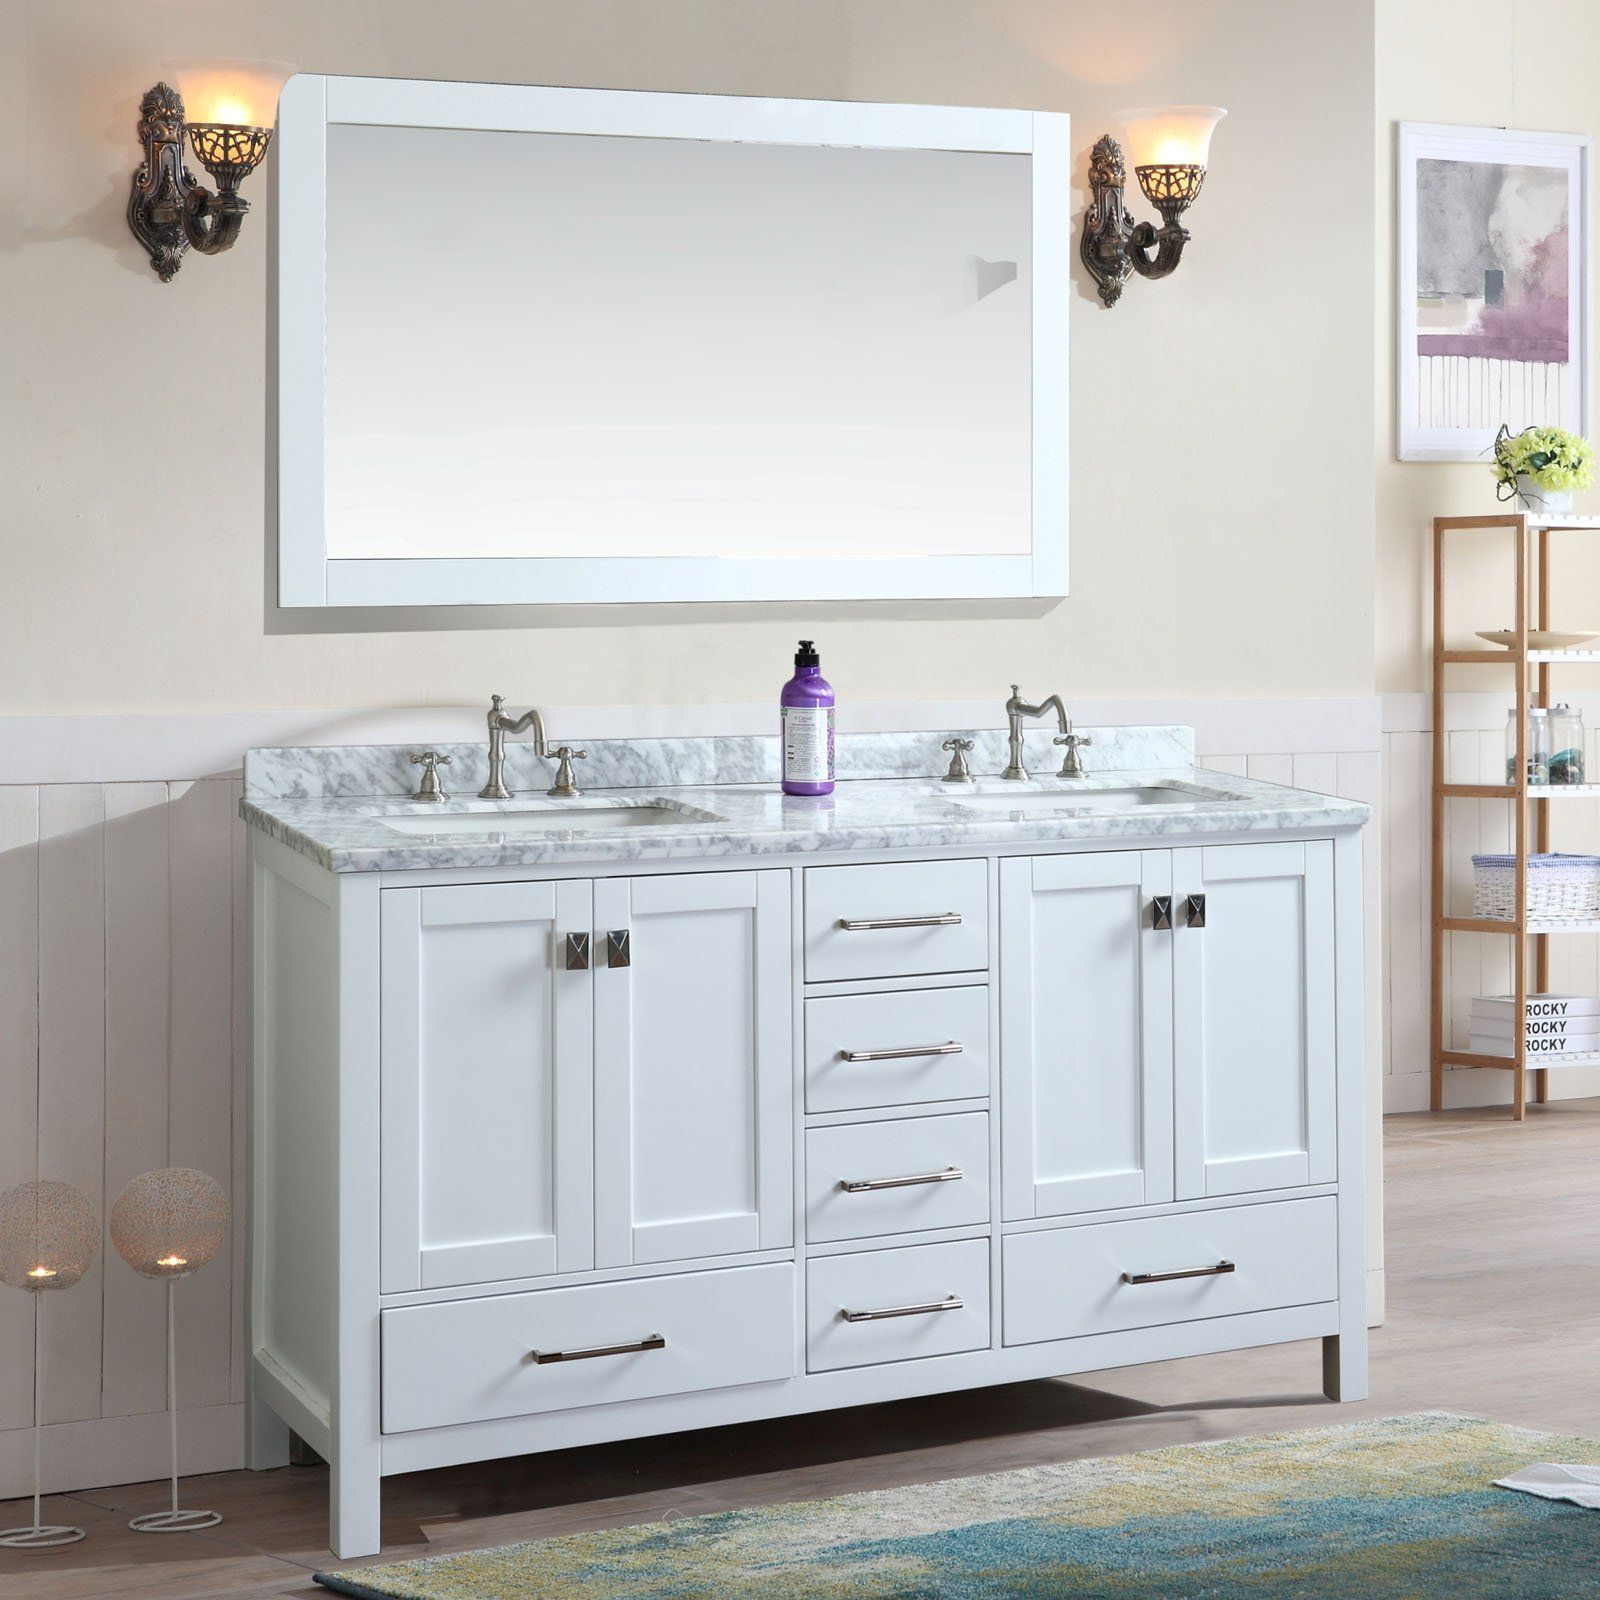 Ari Kitchen and Bath Bella 72 in. Double Bathroom Vanity Set with ...